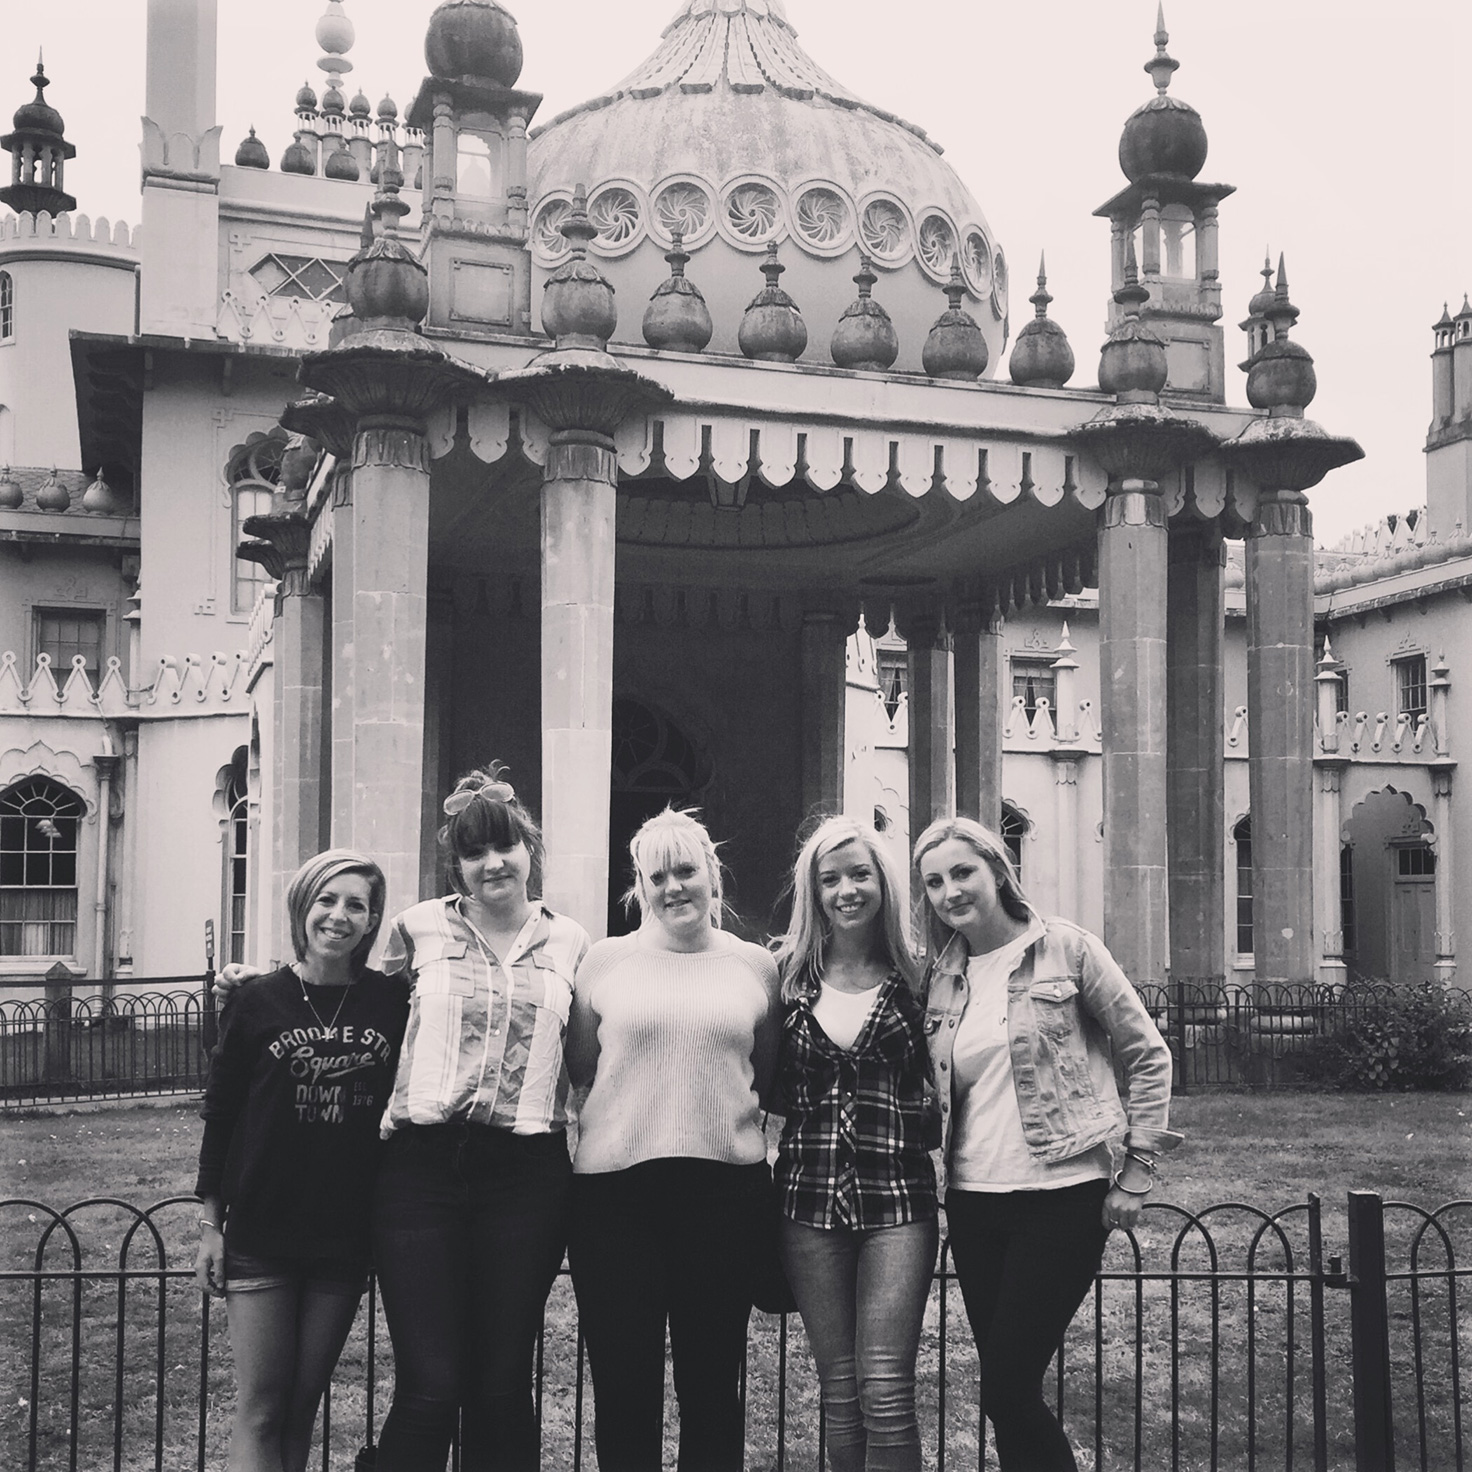 brighton-food-blog-review-pavilion-pals-girls.JPG